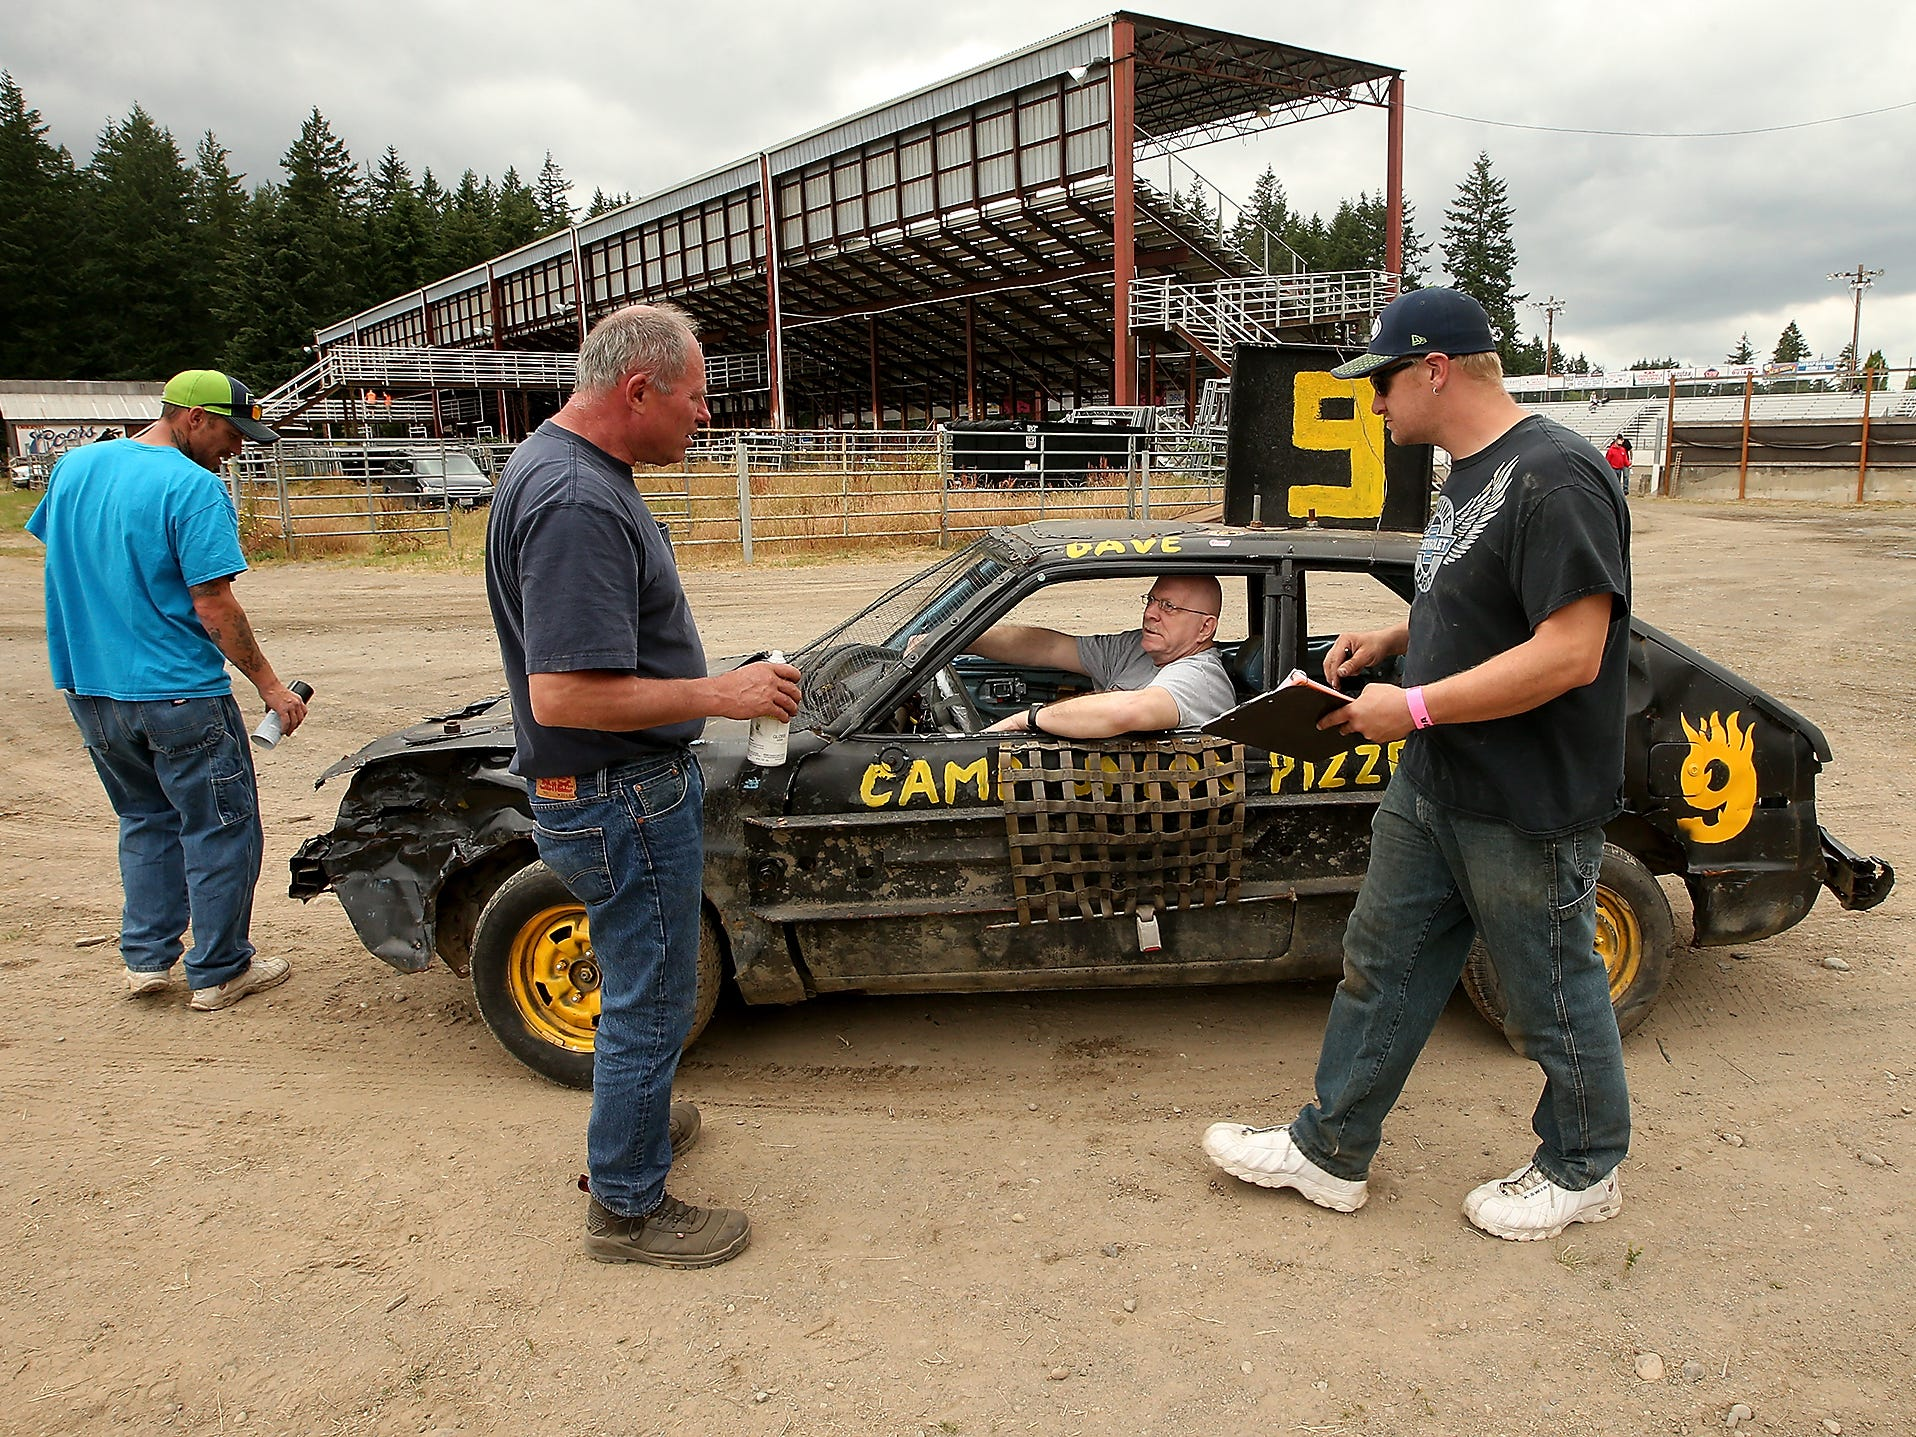 Kitsap Destruction Derby Association safety techs (left to right) Victor Trent, KC___ and Dan Garrison walk around driver David Lake's (center) car as they perform a safety check prior to the start of the Kitsap Destruction Derby at Thunderbird Stadium on Saturday, June 23, 2018.